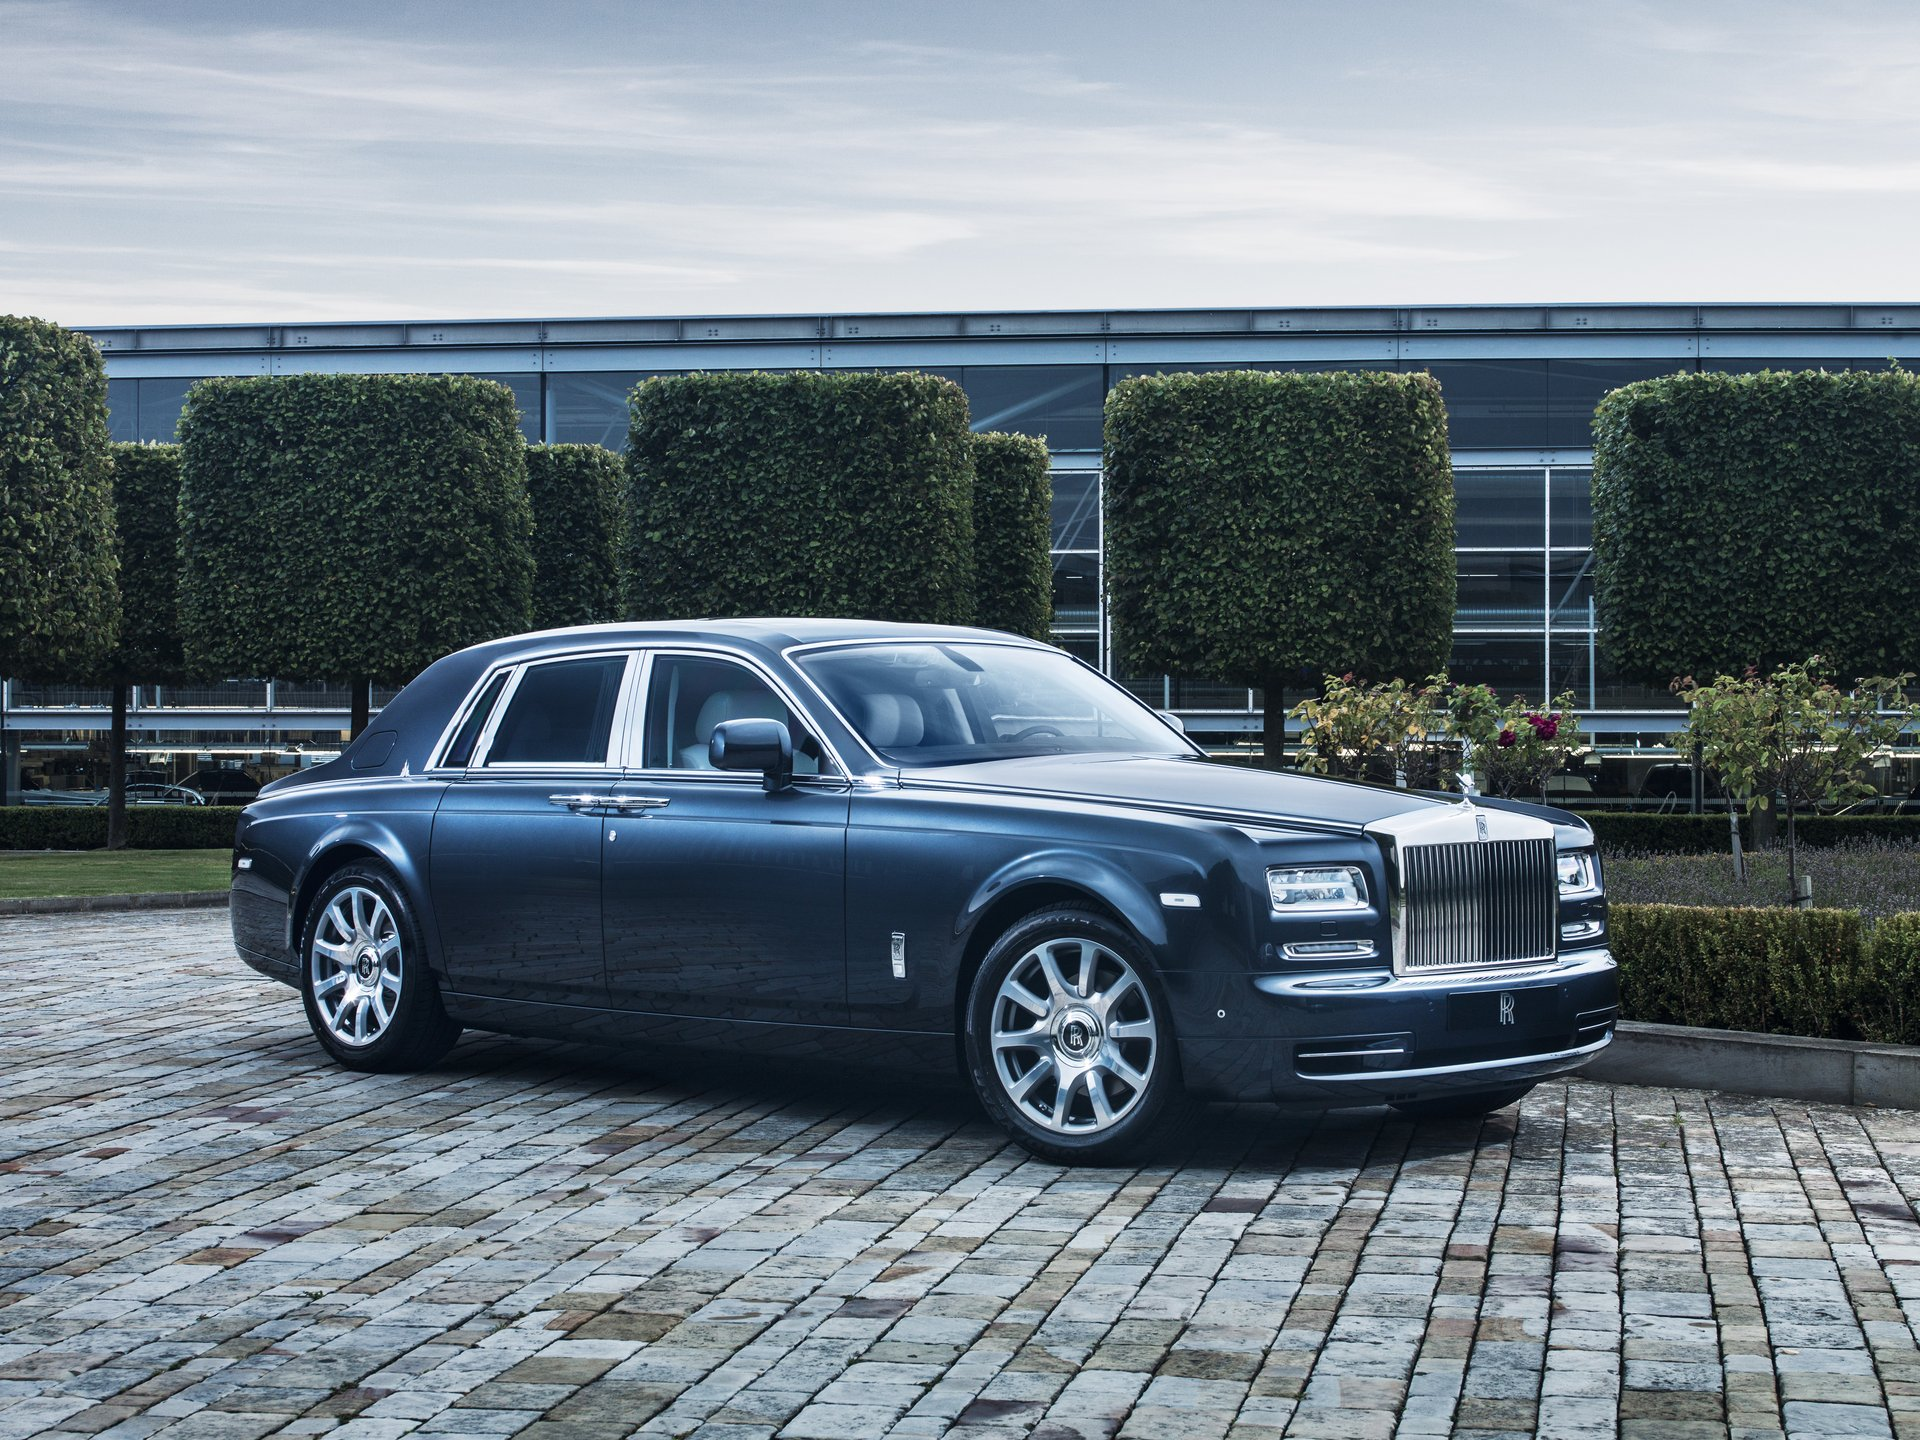 2015 rolls royce phantom_100487202_h 2015 rolls royce phantom review, ratings, specs, prices, and bentley eight wiring diagram at bayanpartner.co